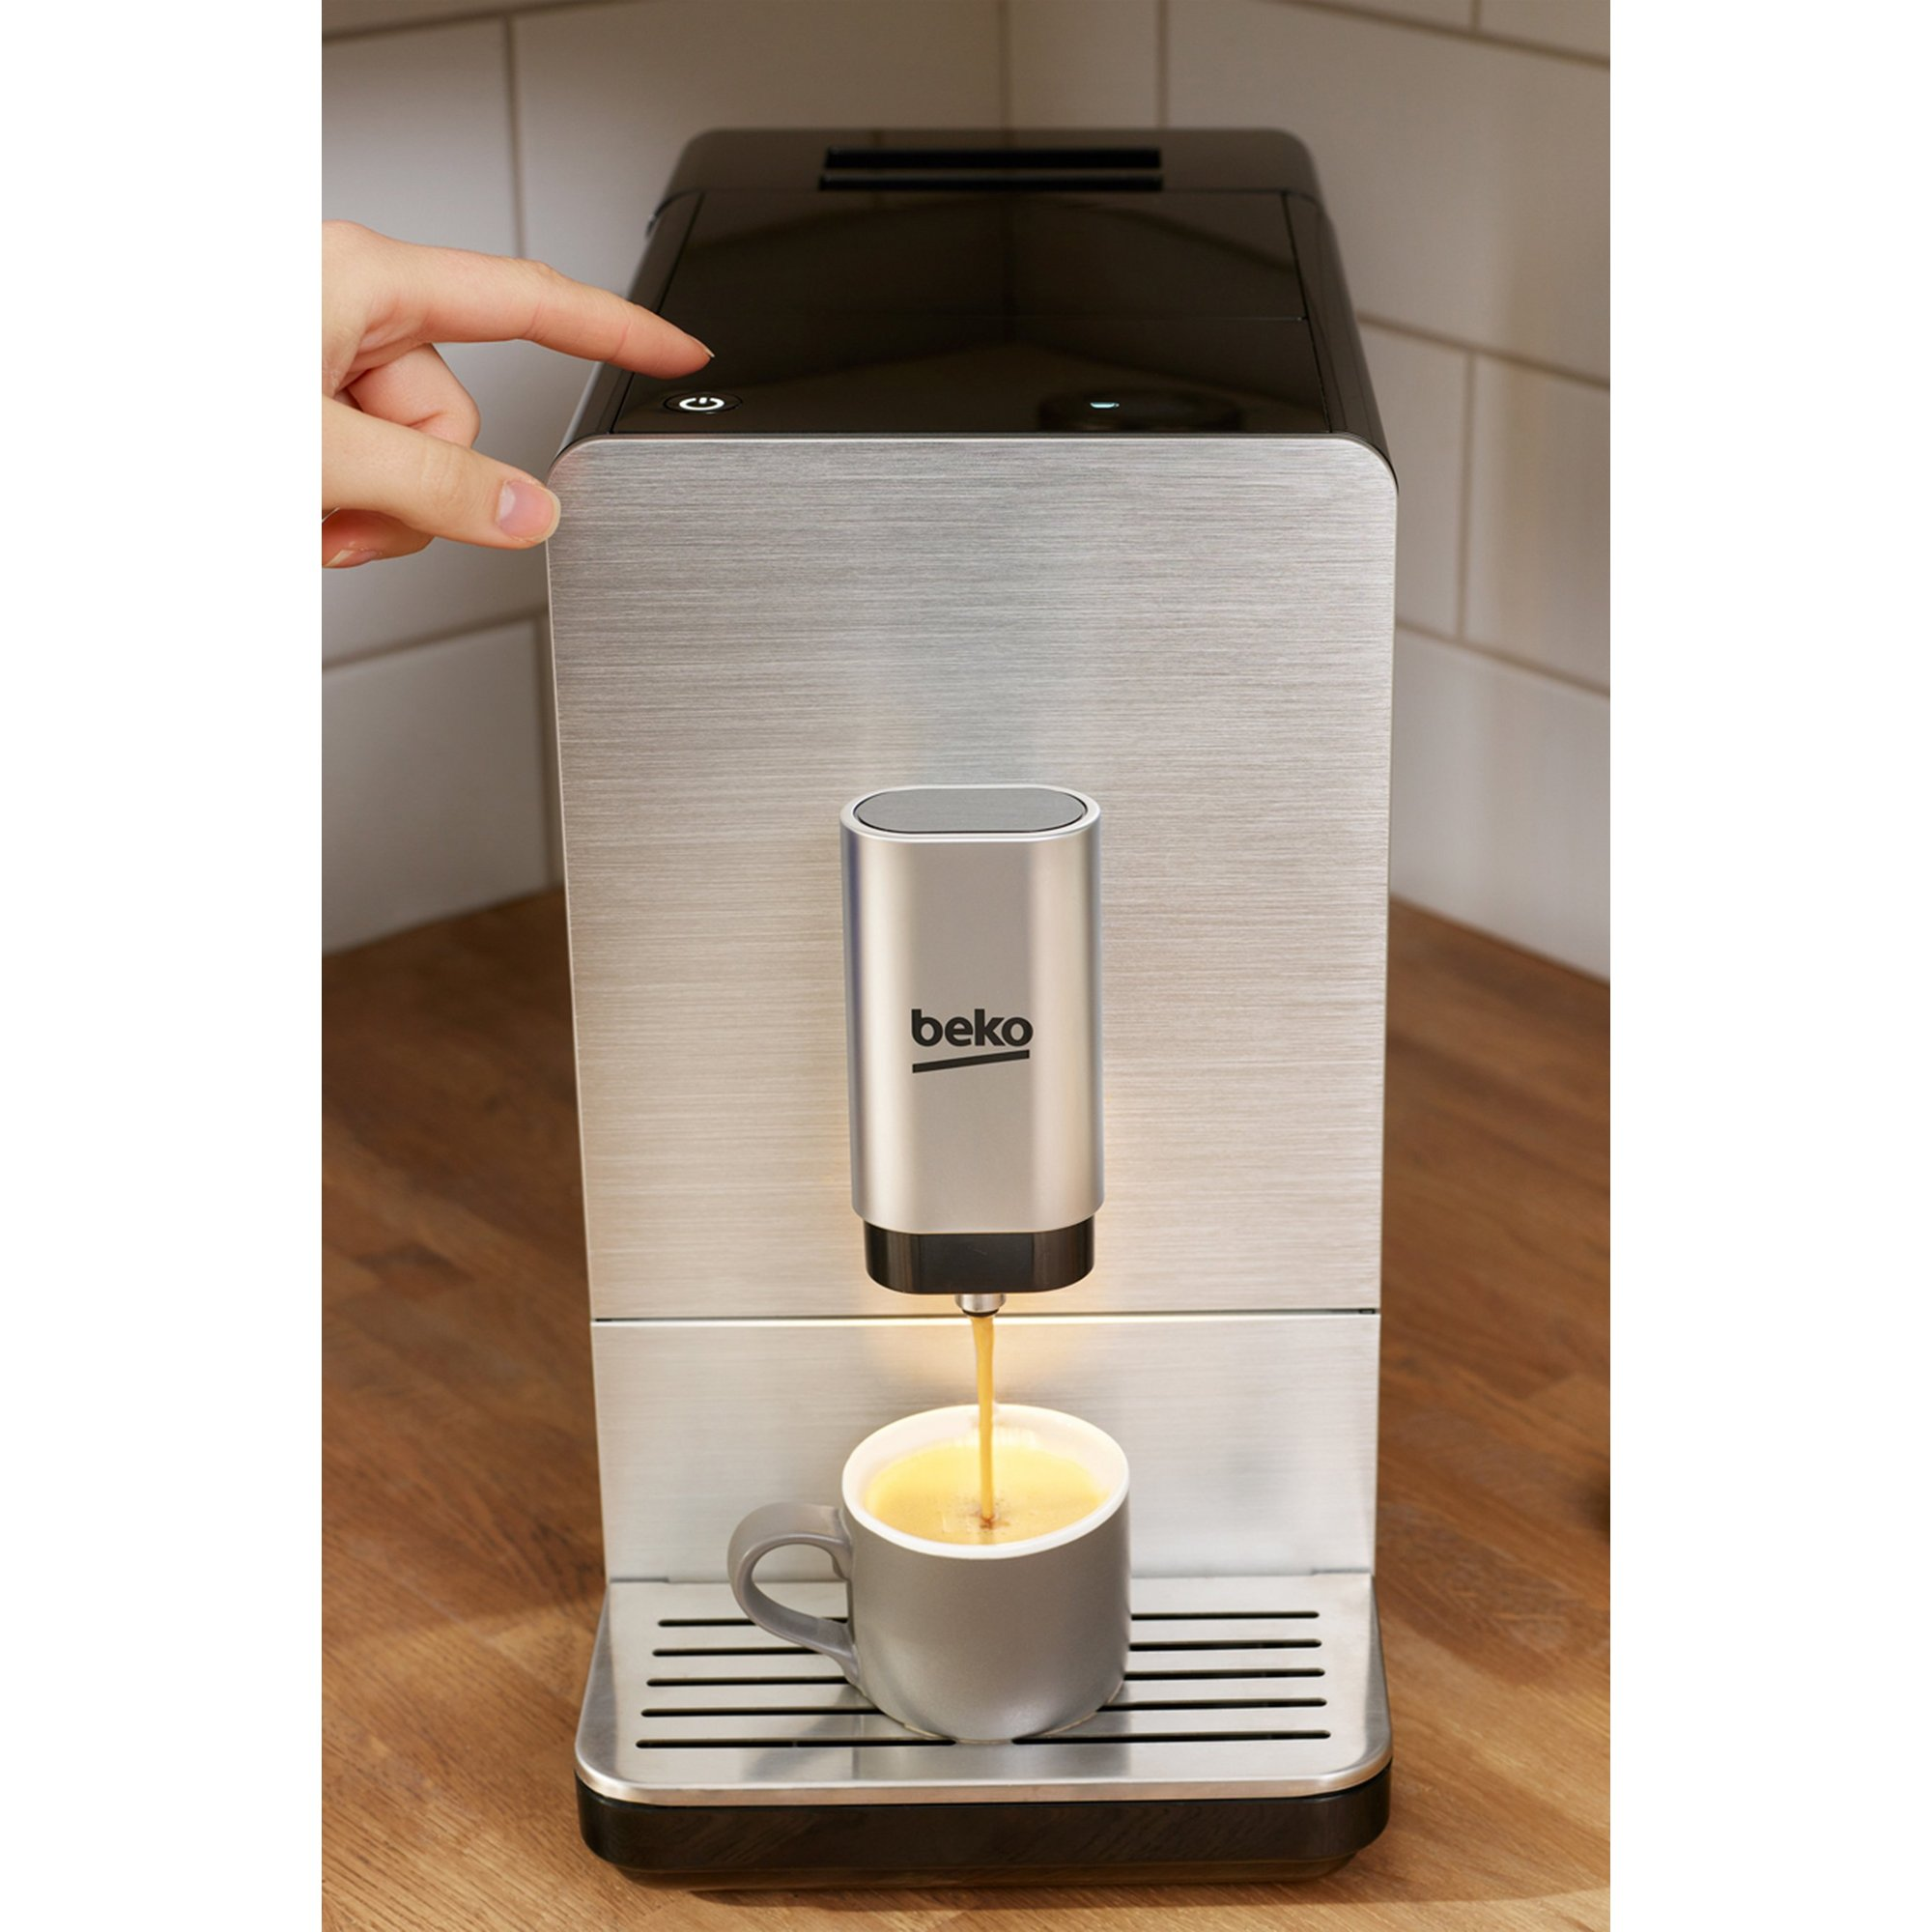 Image of Beko Bean to Cup Coffee Machine